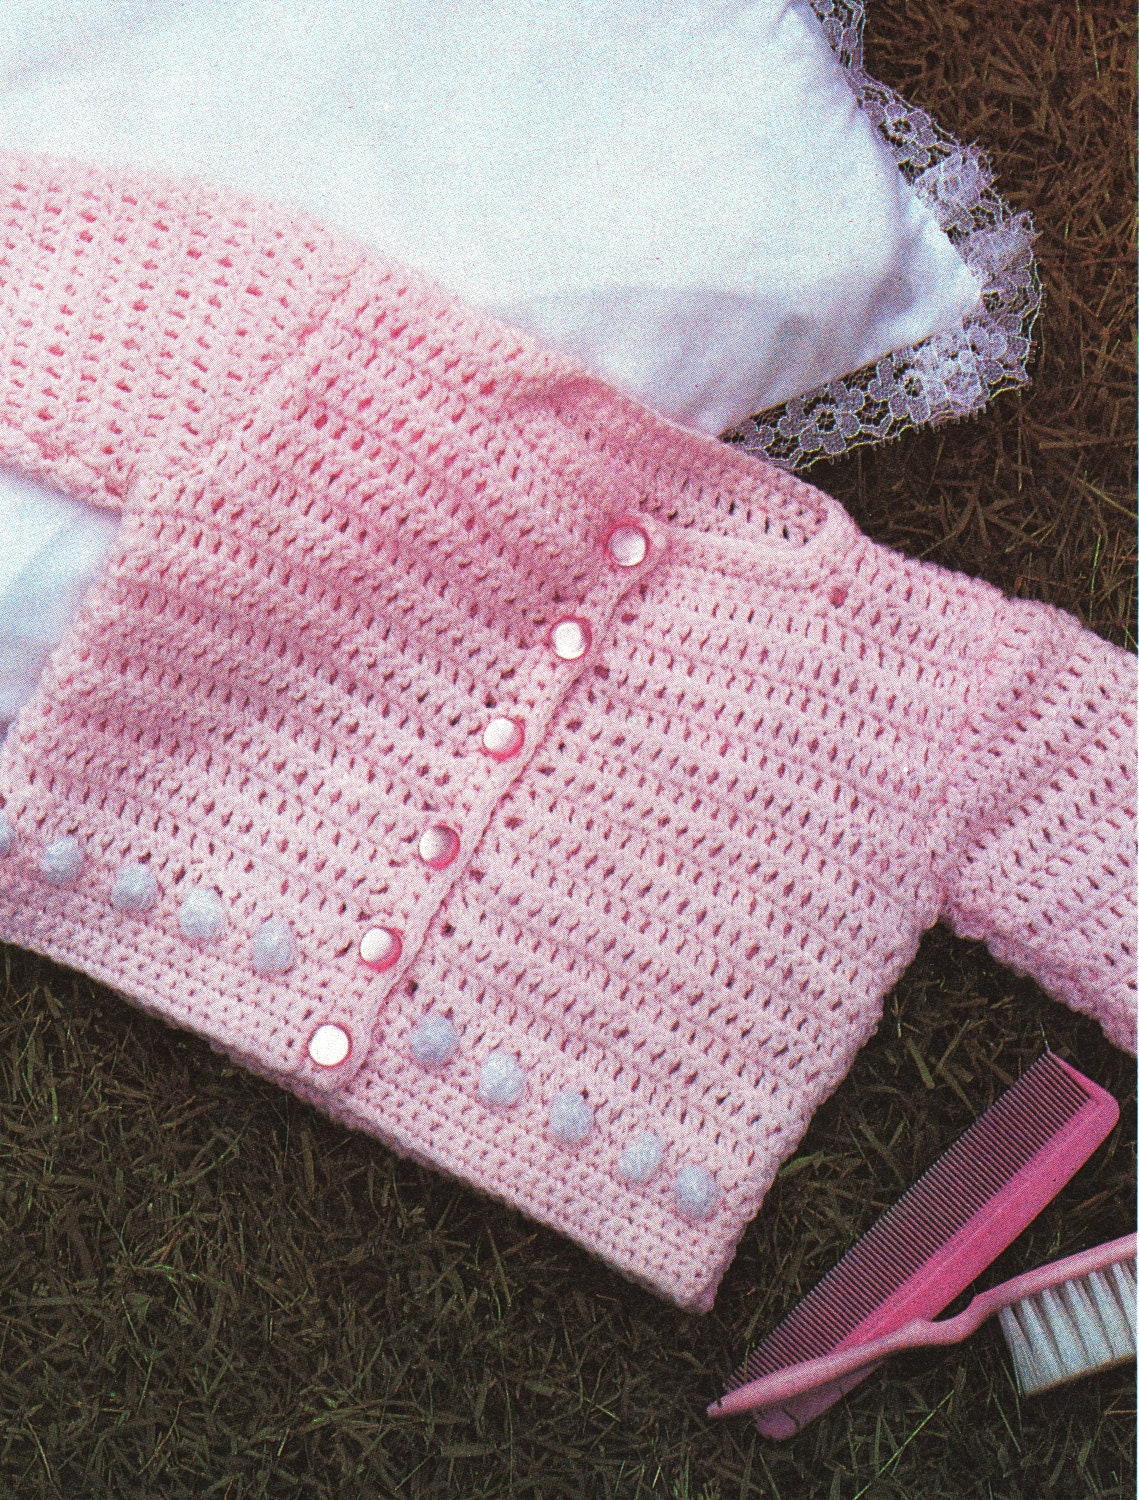 Crochet Baby Girl Cardigan Pattern Free : Baby Crochet Pattern for Newborn Baby Sweater by ...